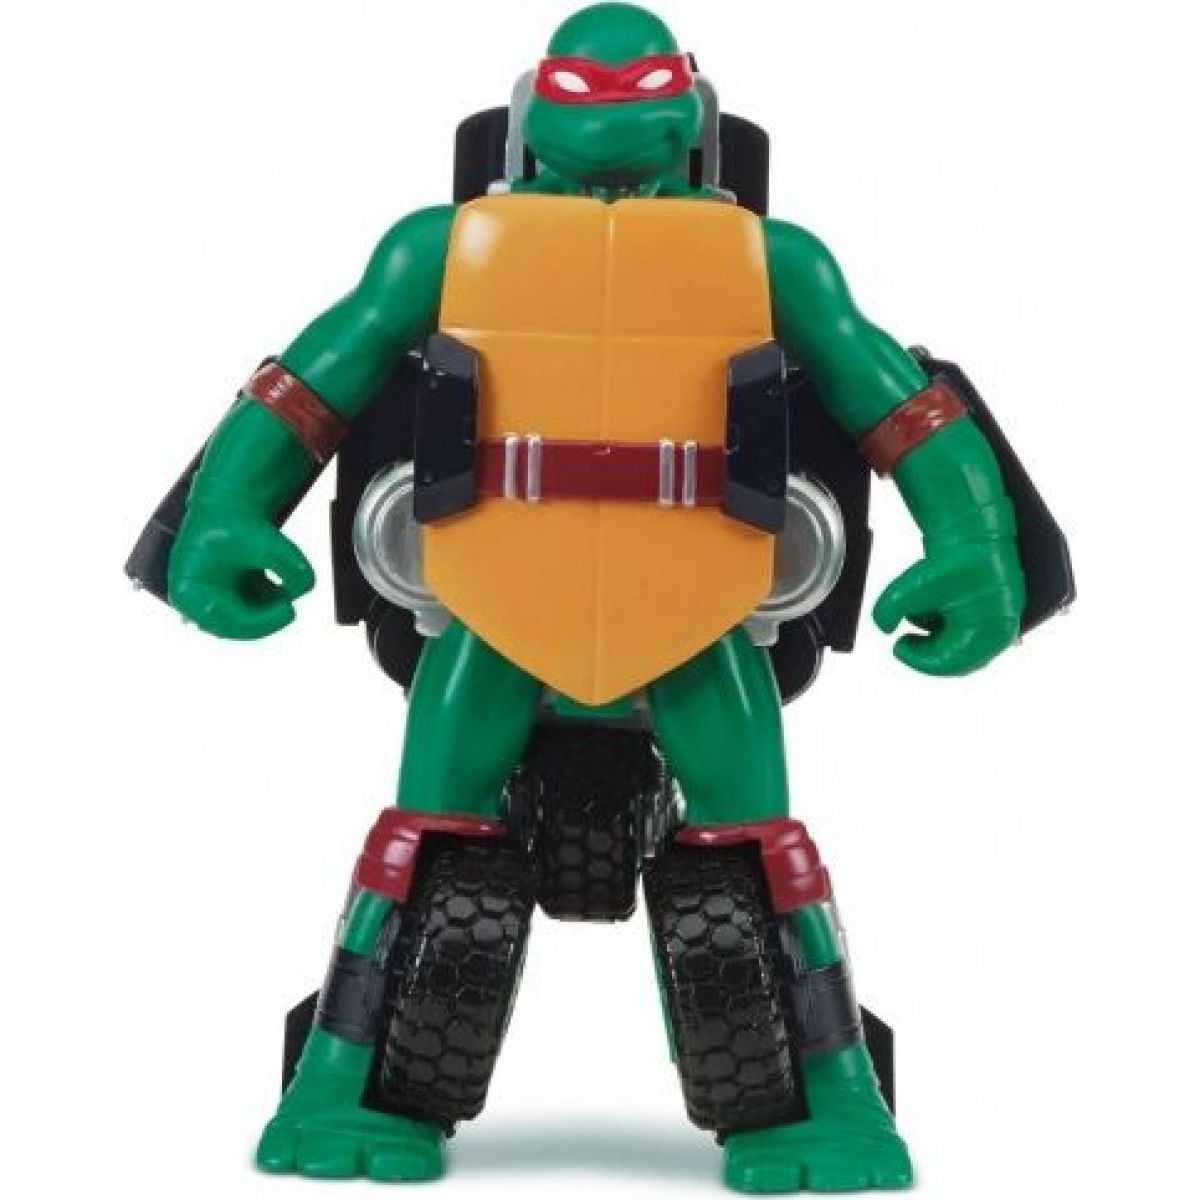 Playmates TMNT Želvy Ninja Transform to vehicle Raphael